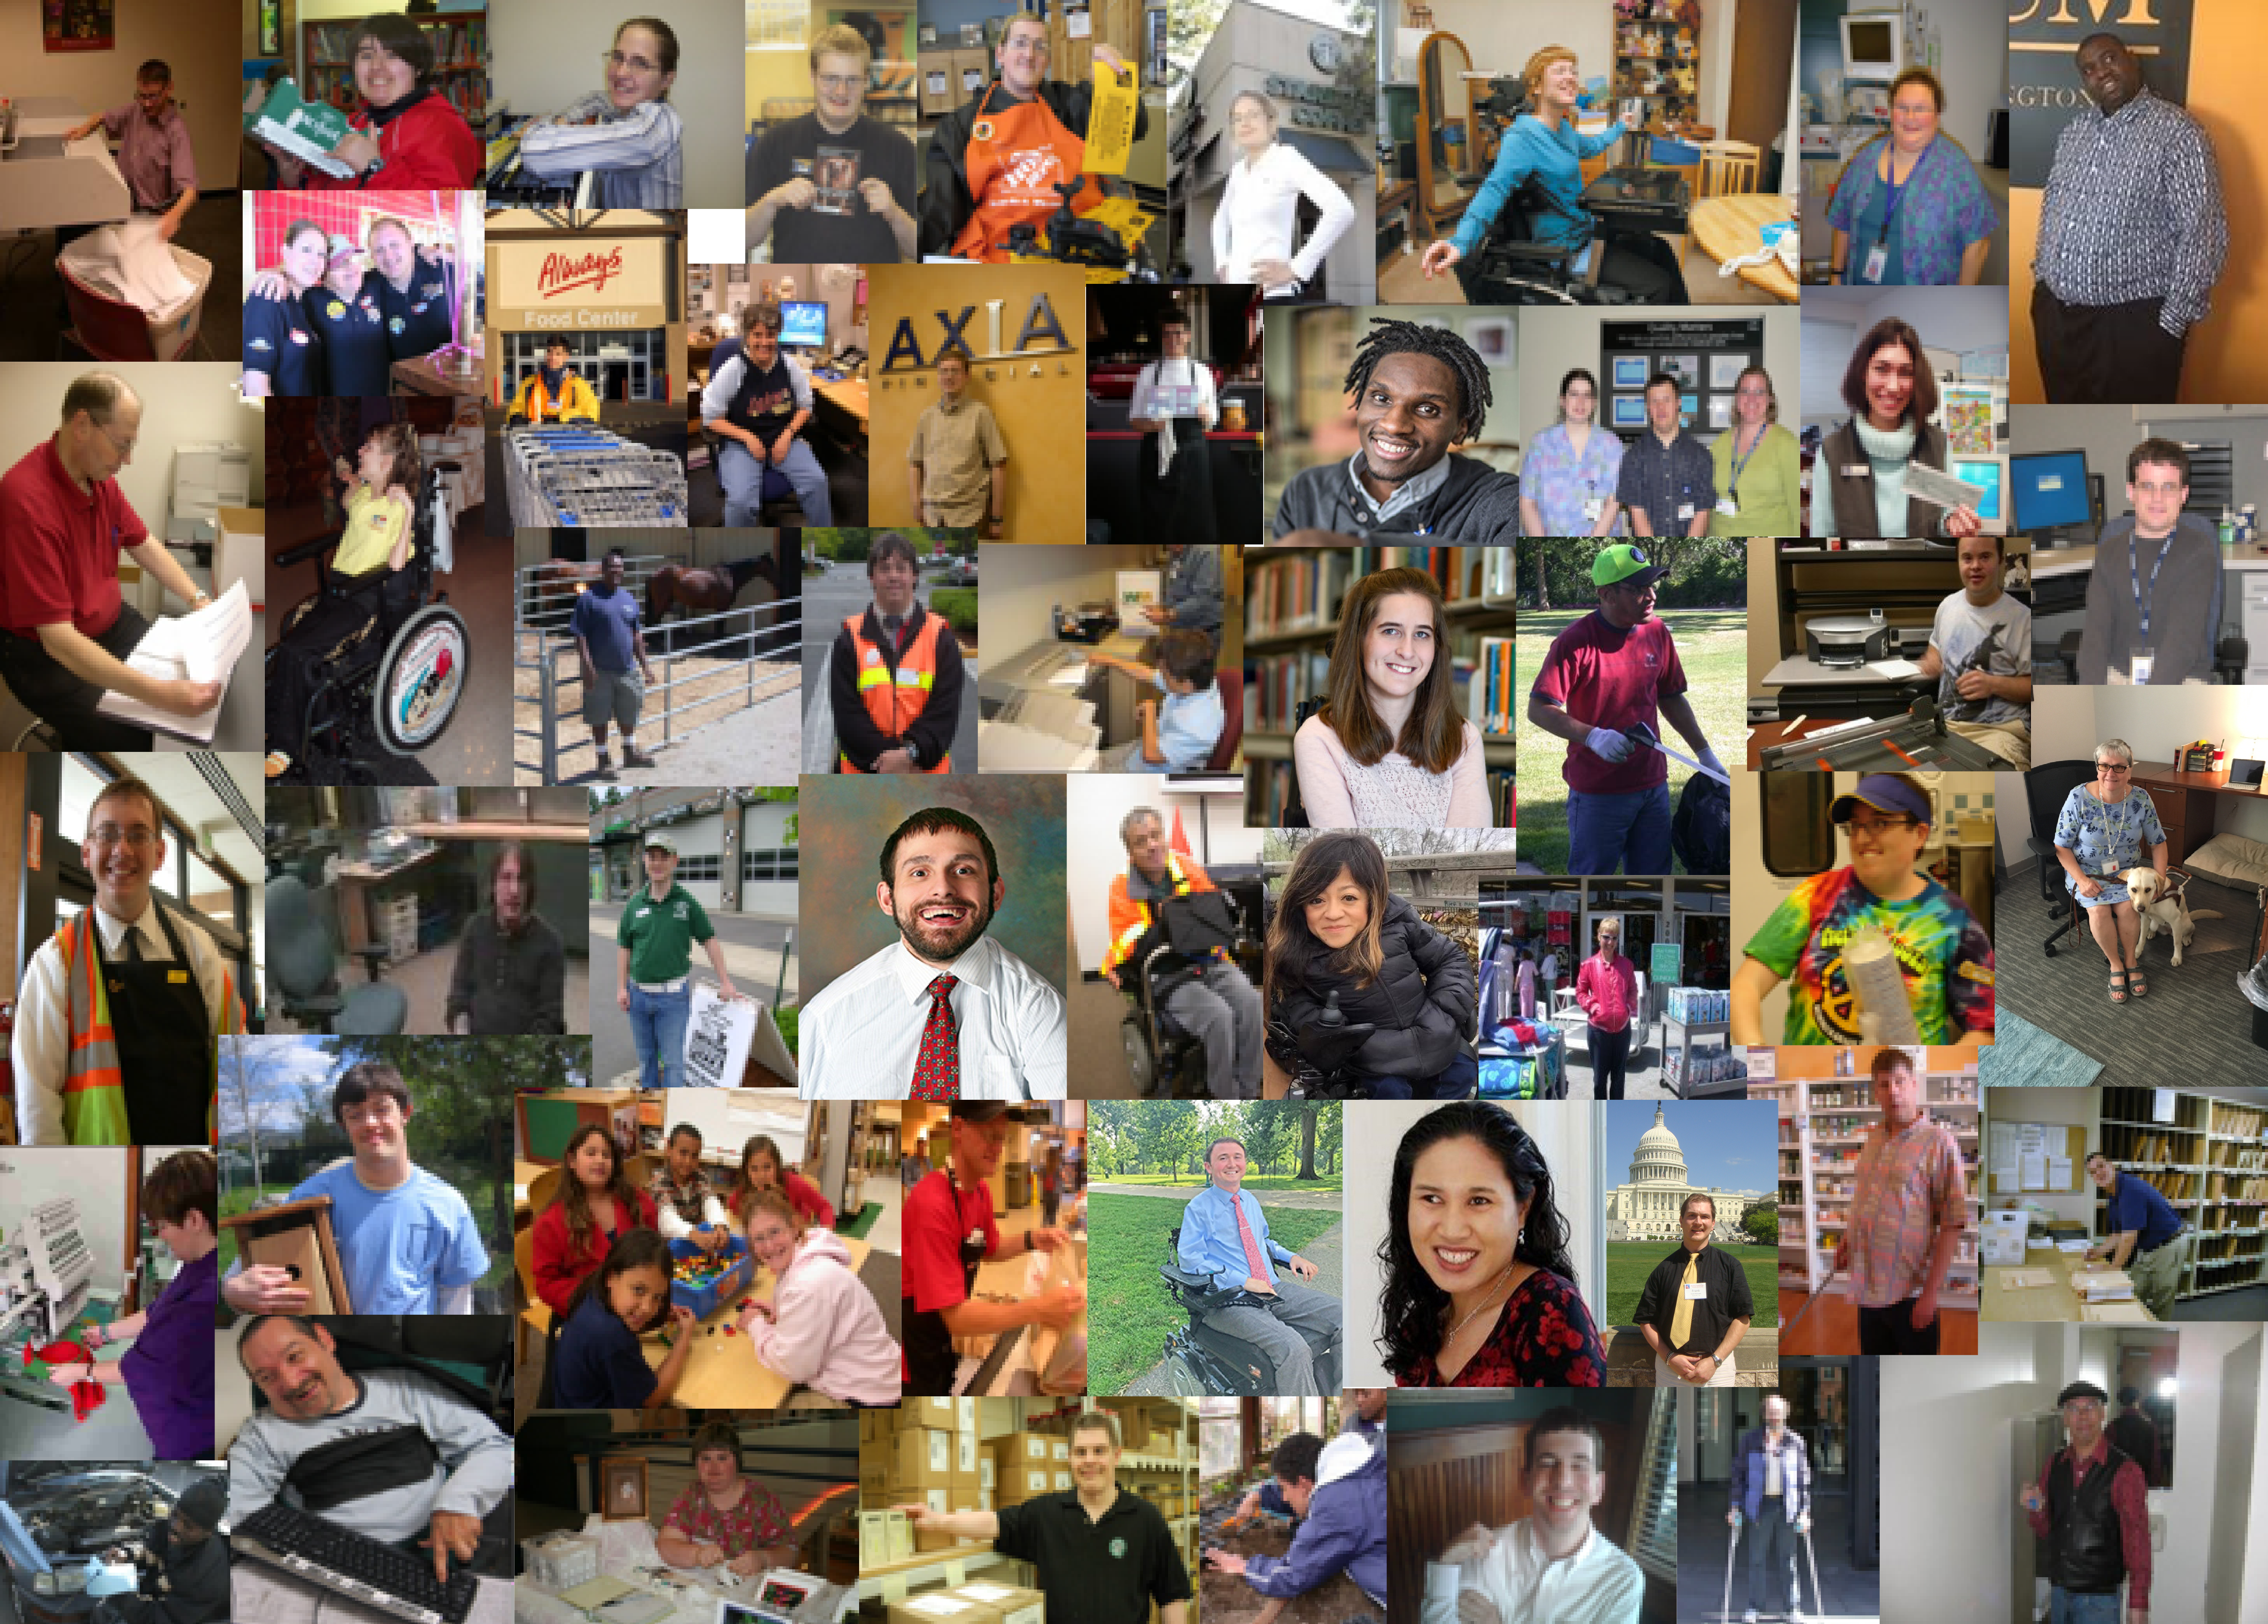 Montage of photos with people working. A large icon of two hands shaking is on top